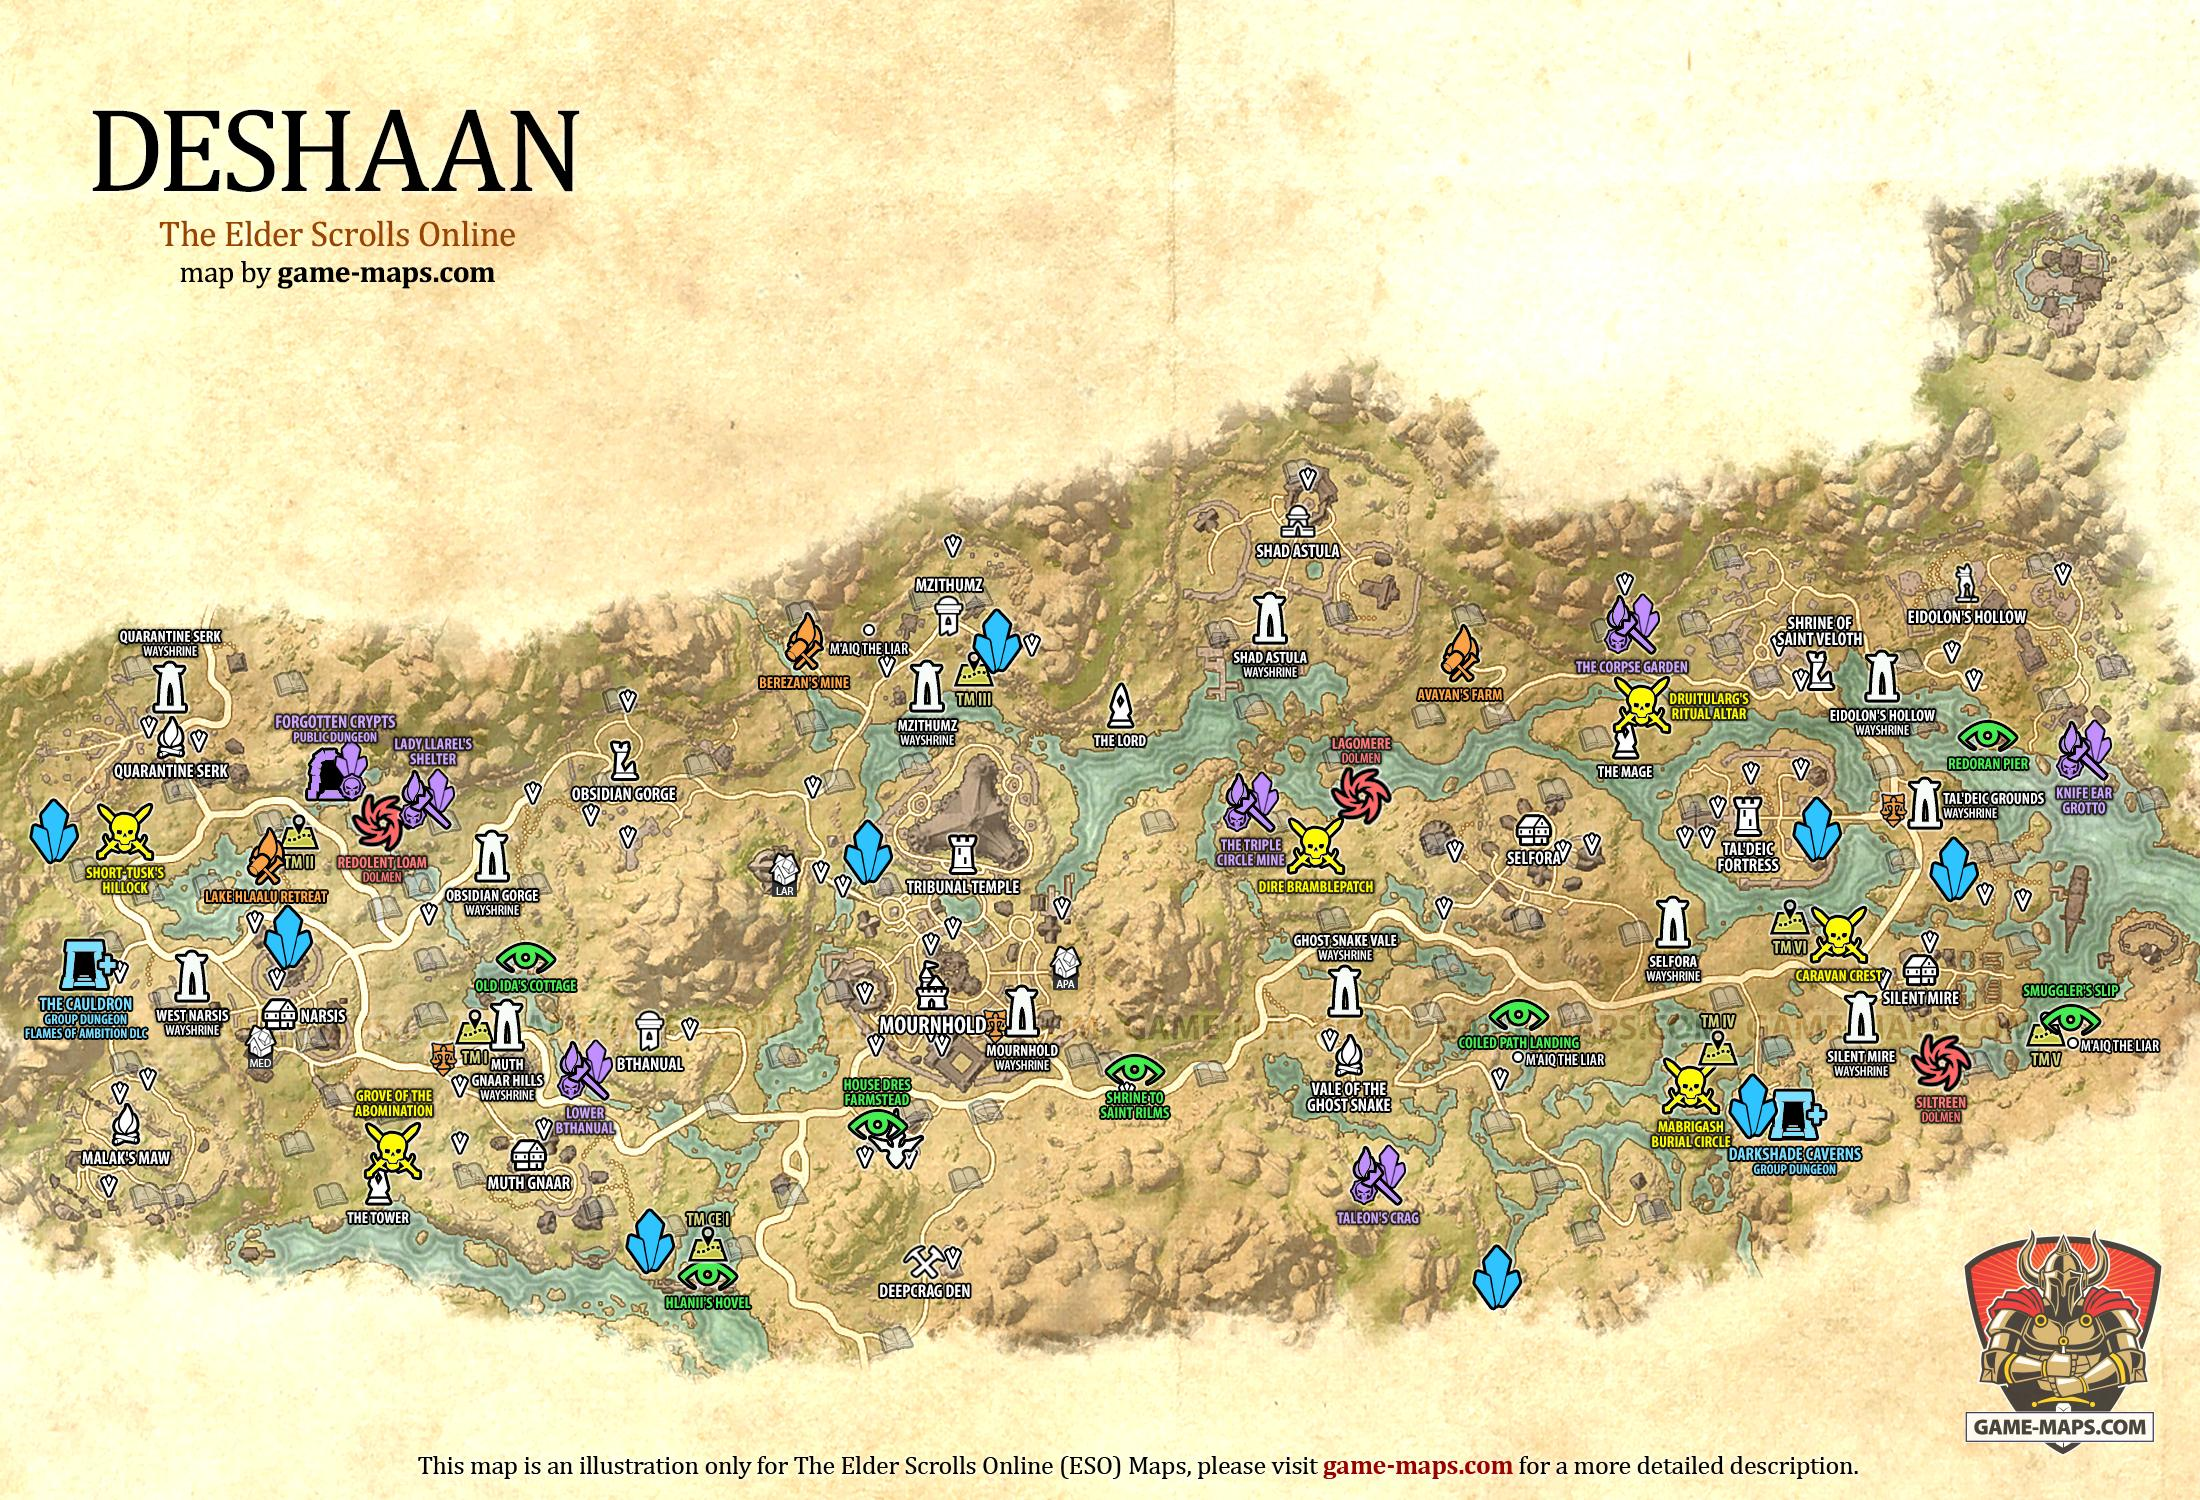 deshaan map the elder scrolls online game maps com Eso Map deshaan zone map mournhold the elder scrolls online eso maps, guides & walkthroughs eso maps